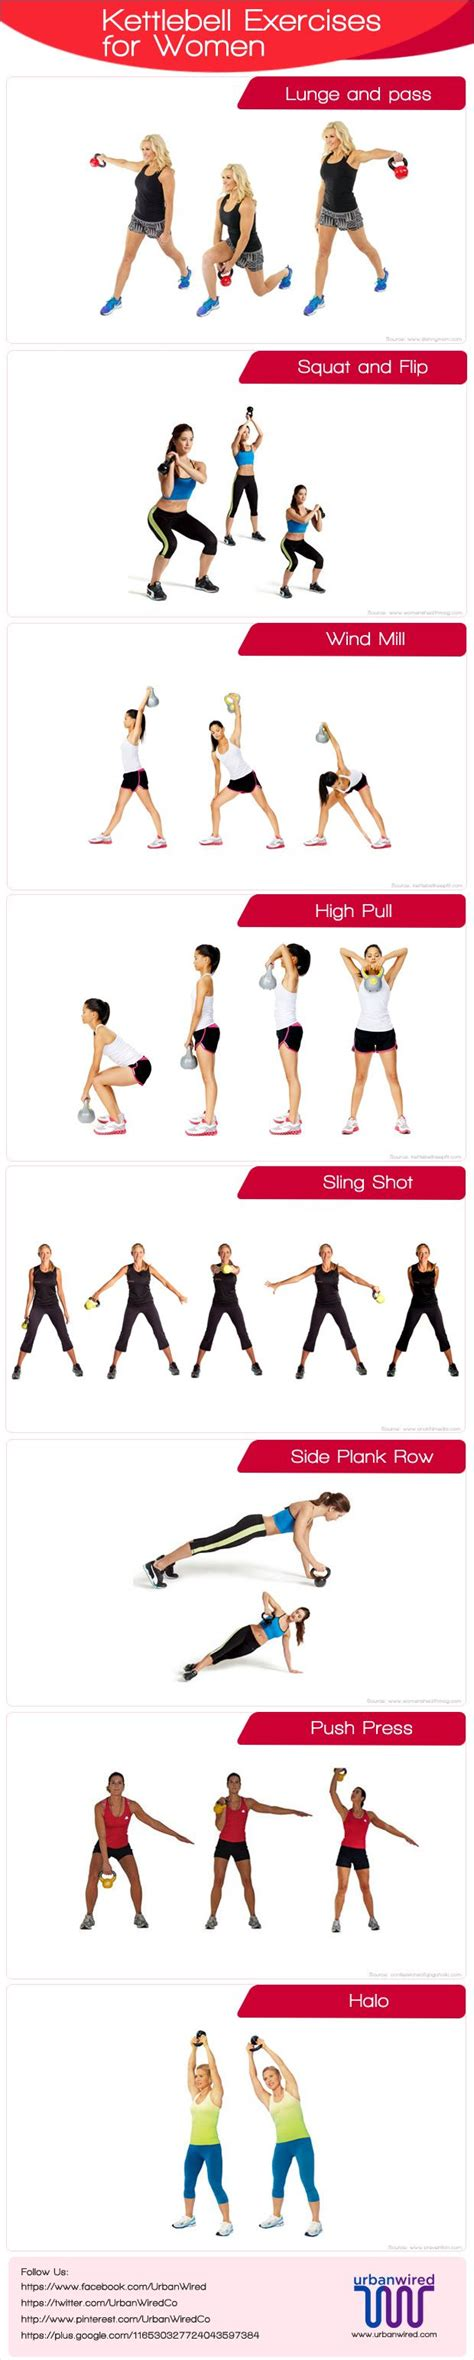 kettlebell exercises fitness workout instructors workouts motivation body weight opinion cardio kettlebells loss routines health strength benefits way training combine